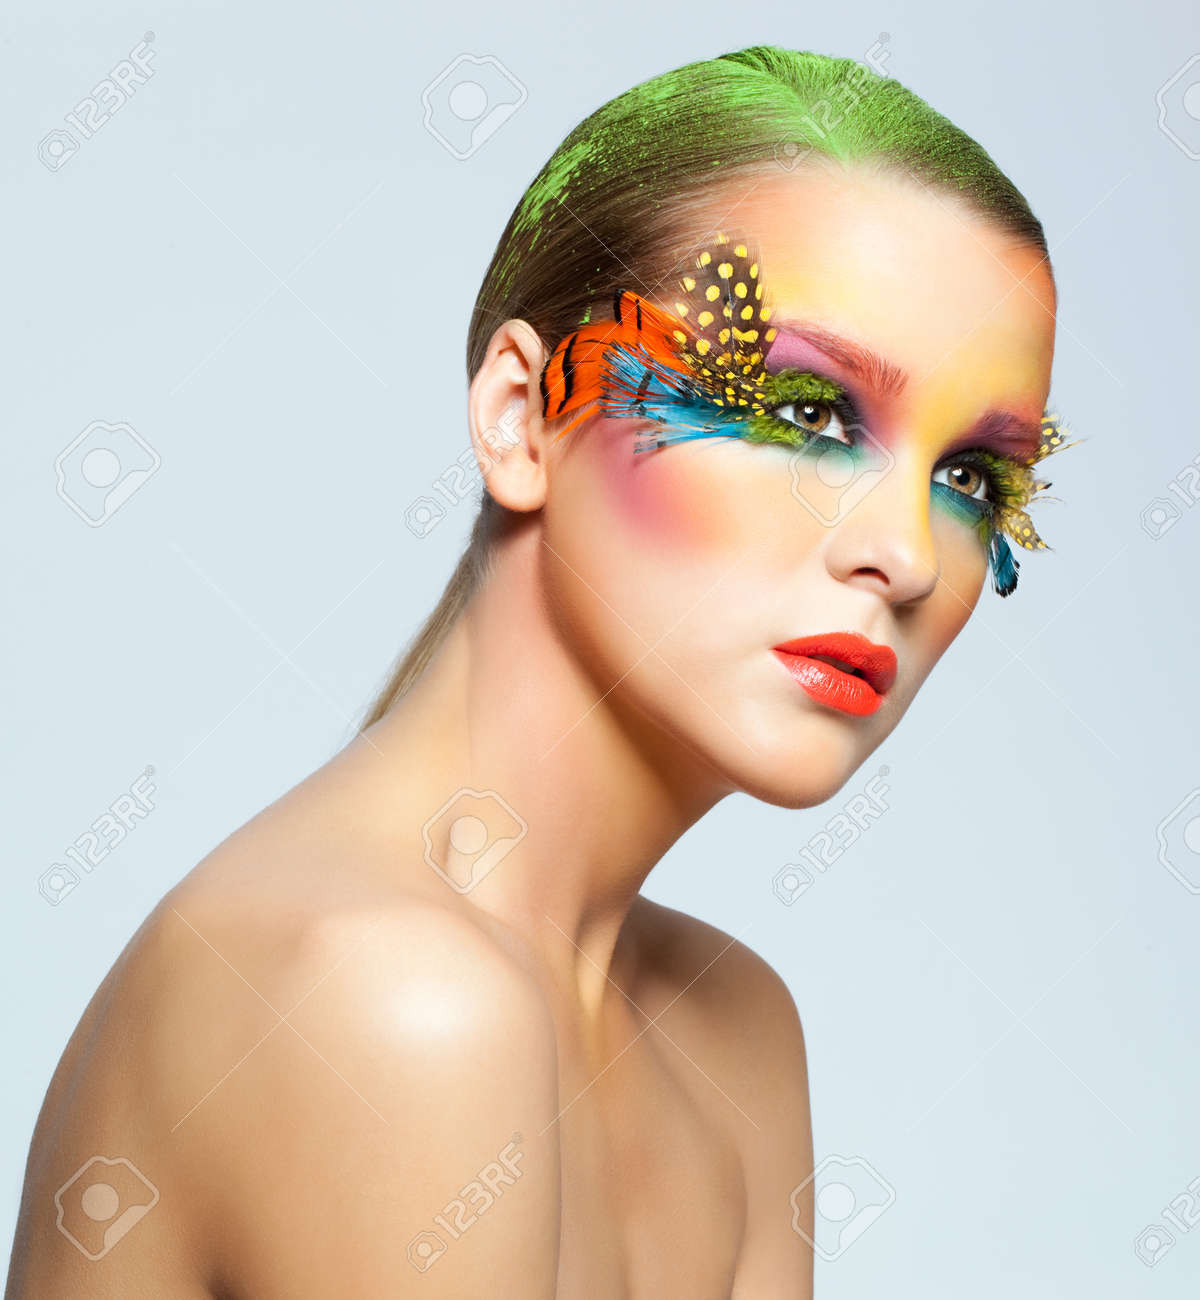 b8bc7f93102 Stock Photo - Young pretty woman face with false feather eyelashes fashion  makeup